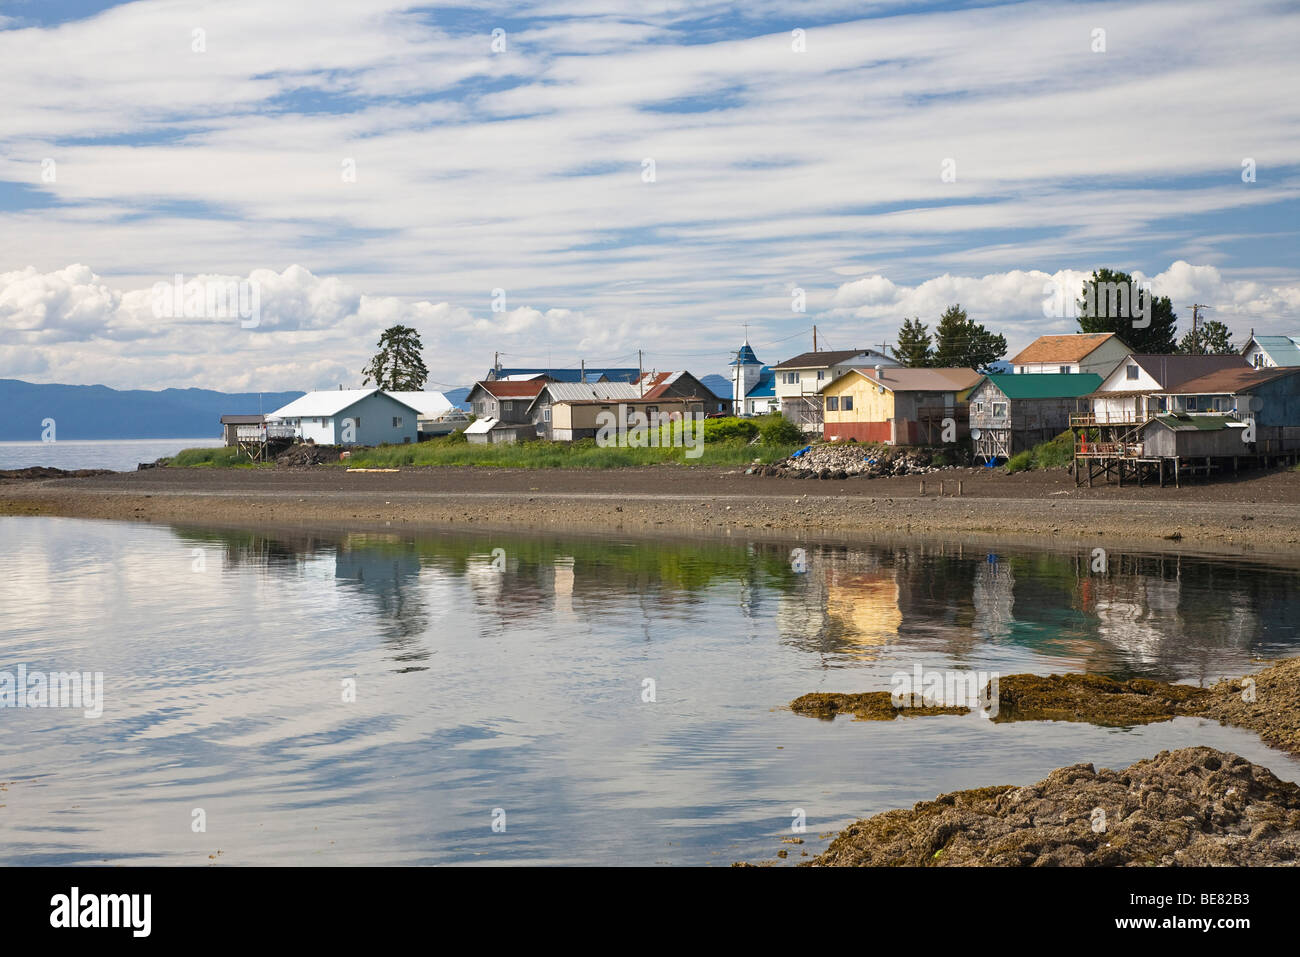 Houses on an island under cloudy sky, Kake, Inside Passage, Southeast Alaska, USA - Stock Image